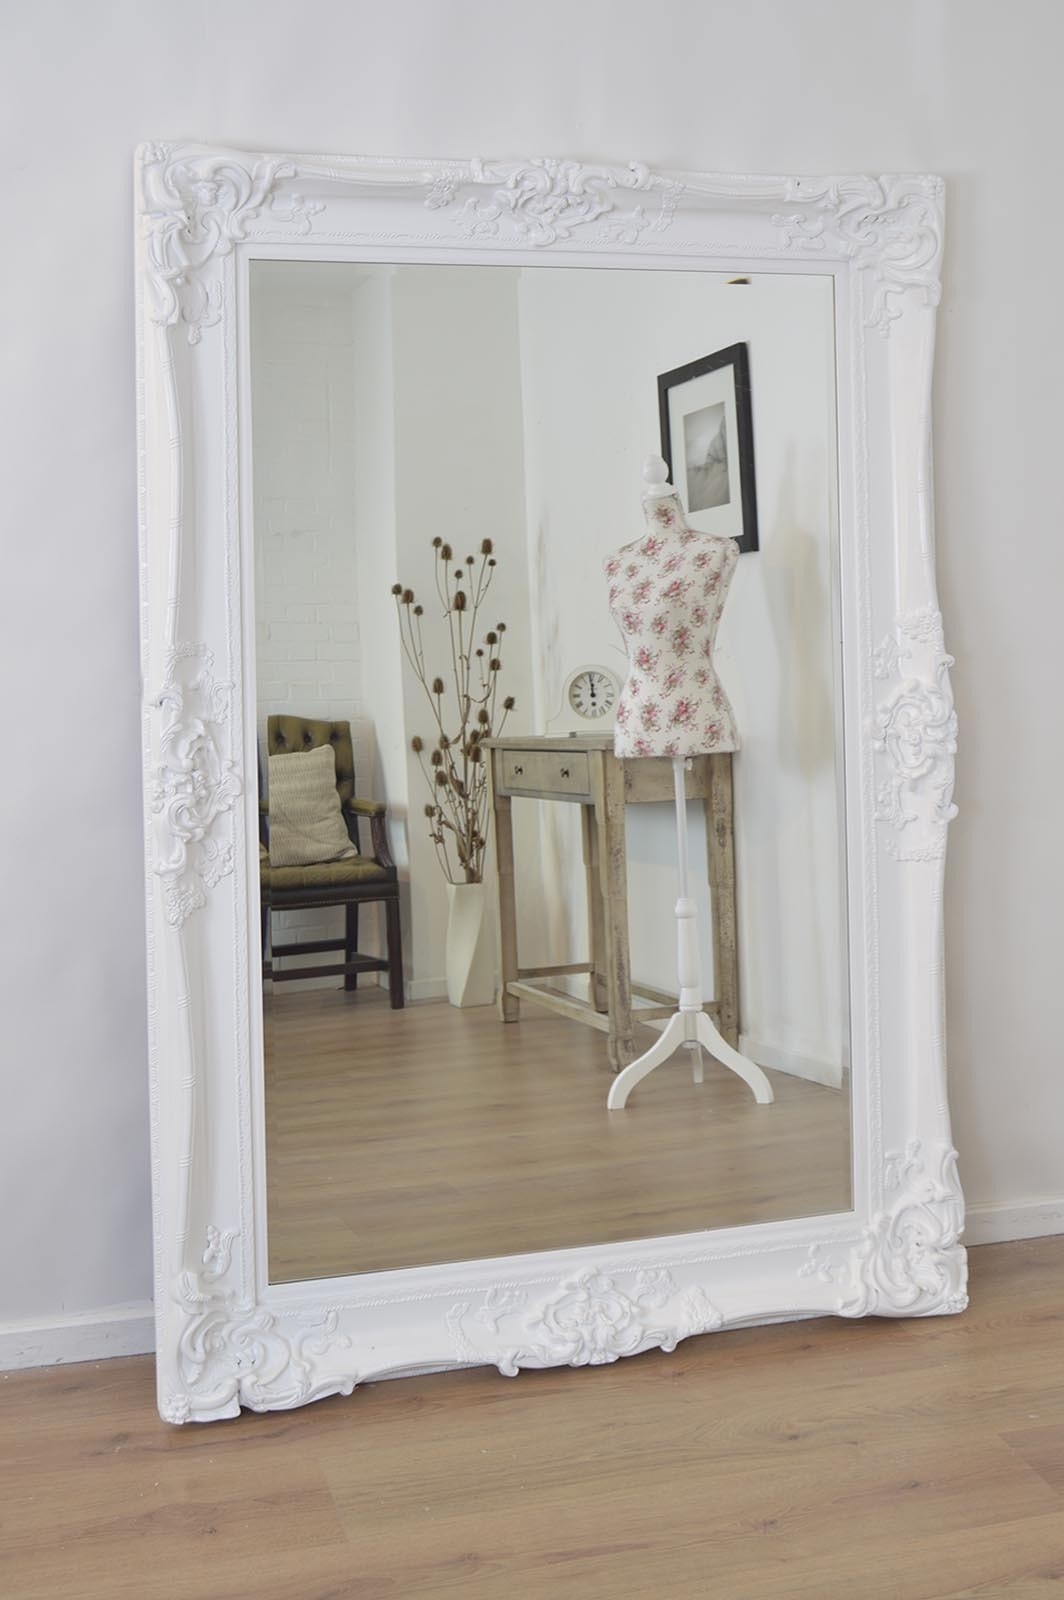 Large White Antique Shab Chic Ornate Wall Mirror 6ft X 4ft With Regard To Large Ornate White Mirror (Image 3 of 15)